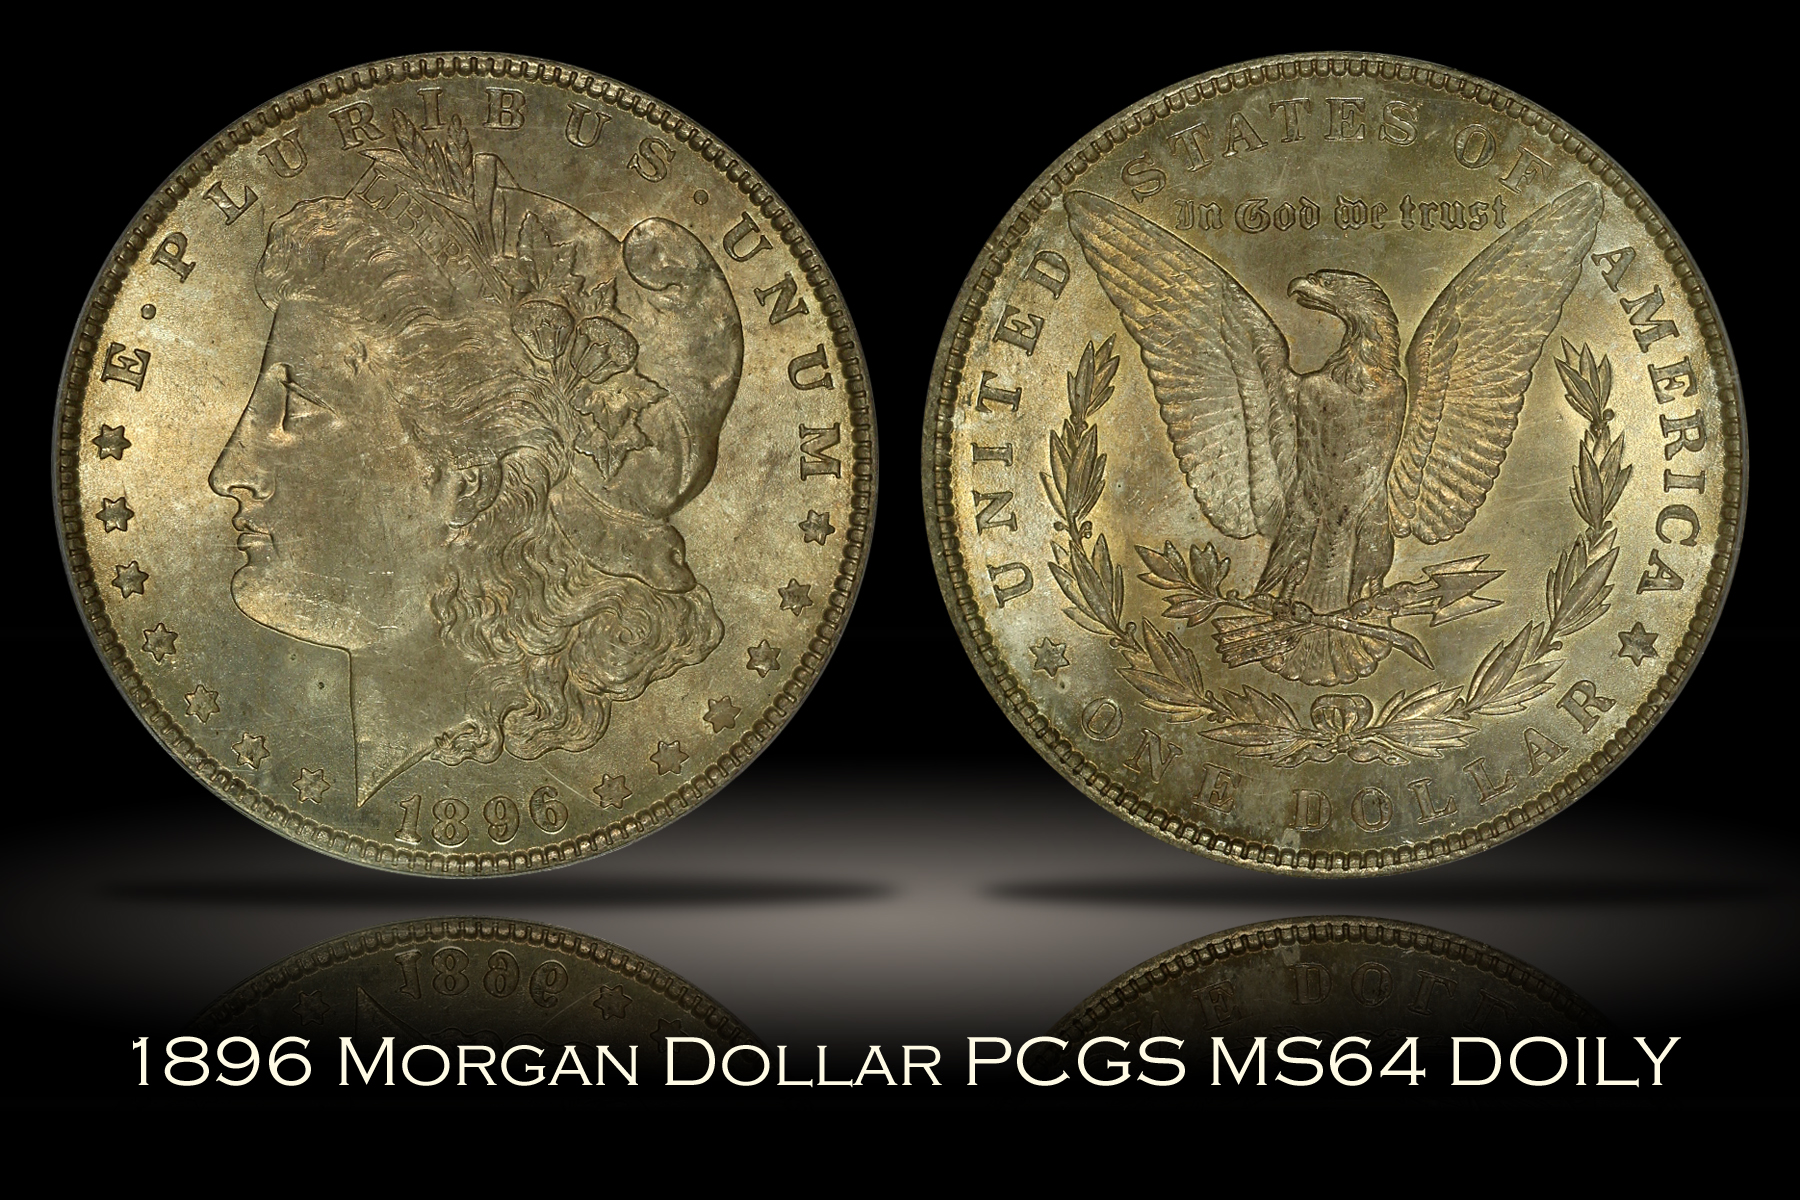 1896 Morgan Dollar PCGS MS64 DOILY